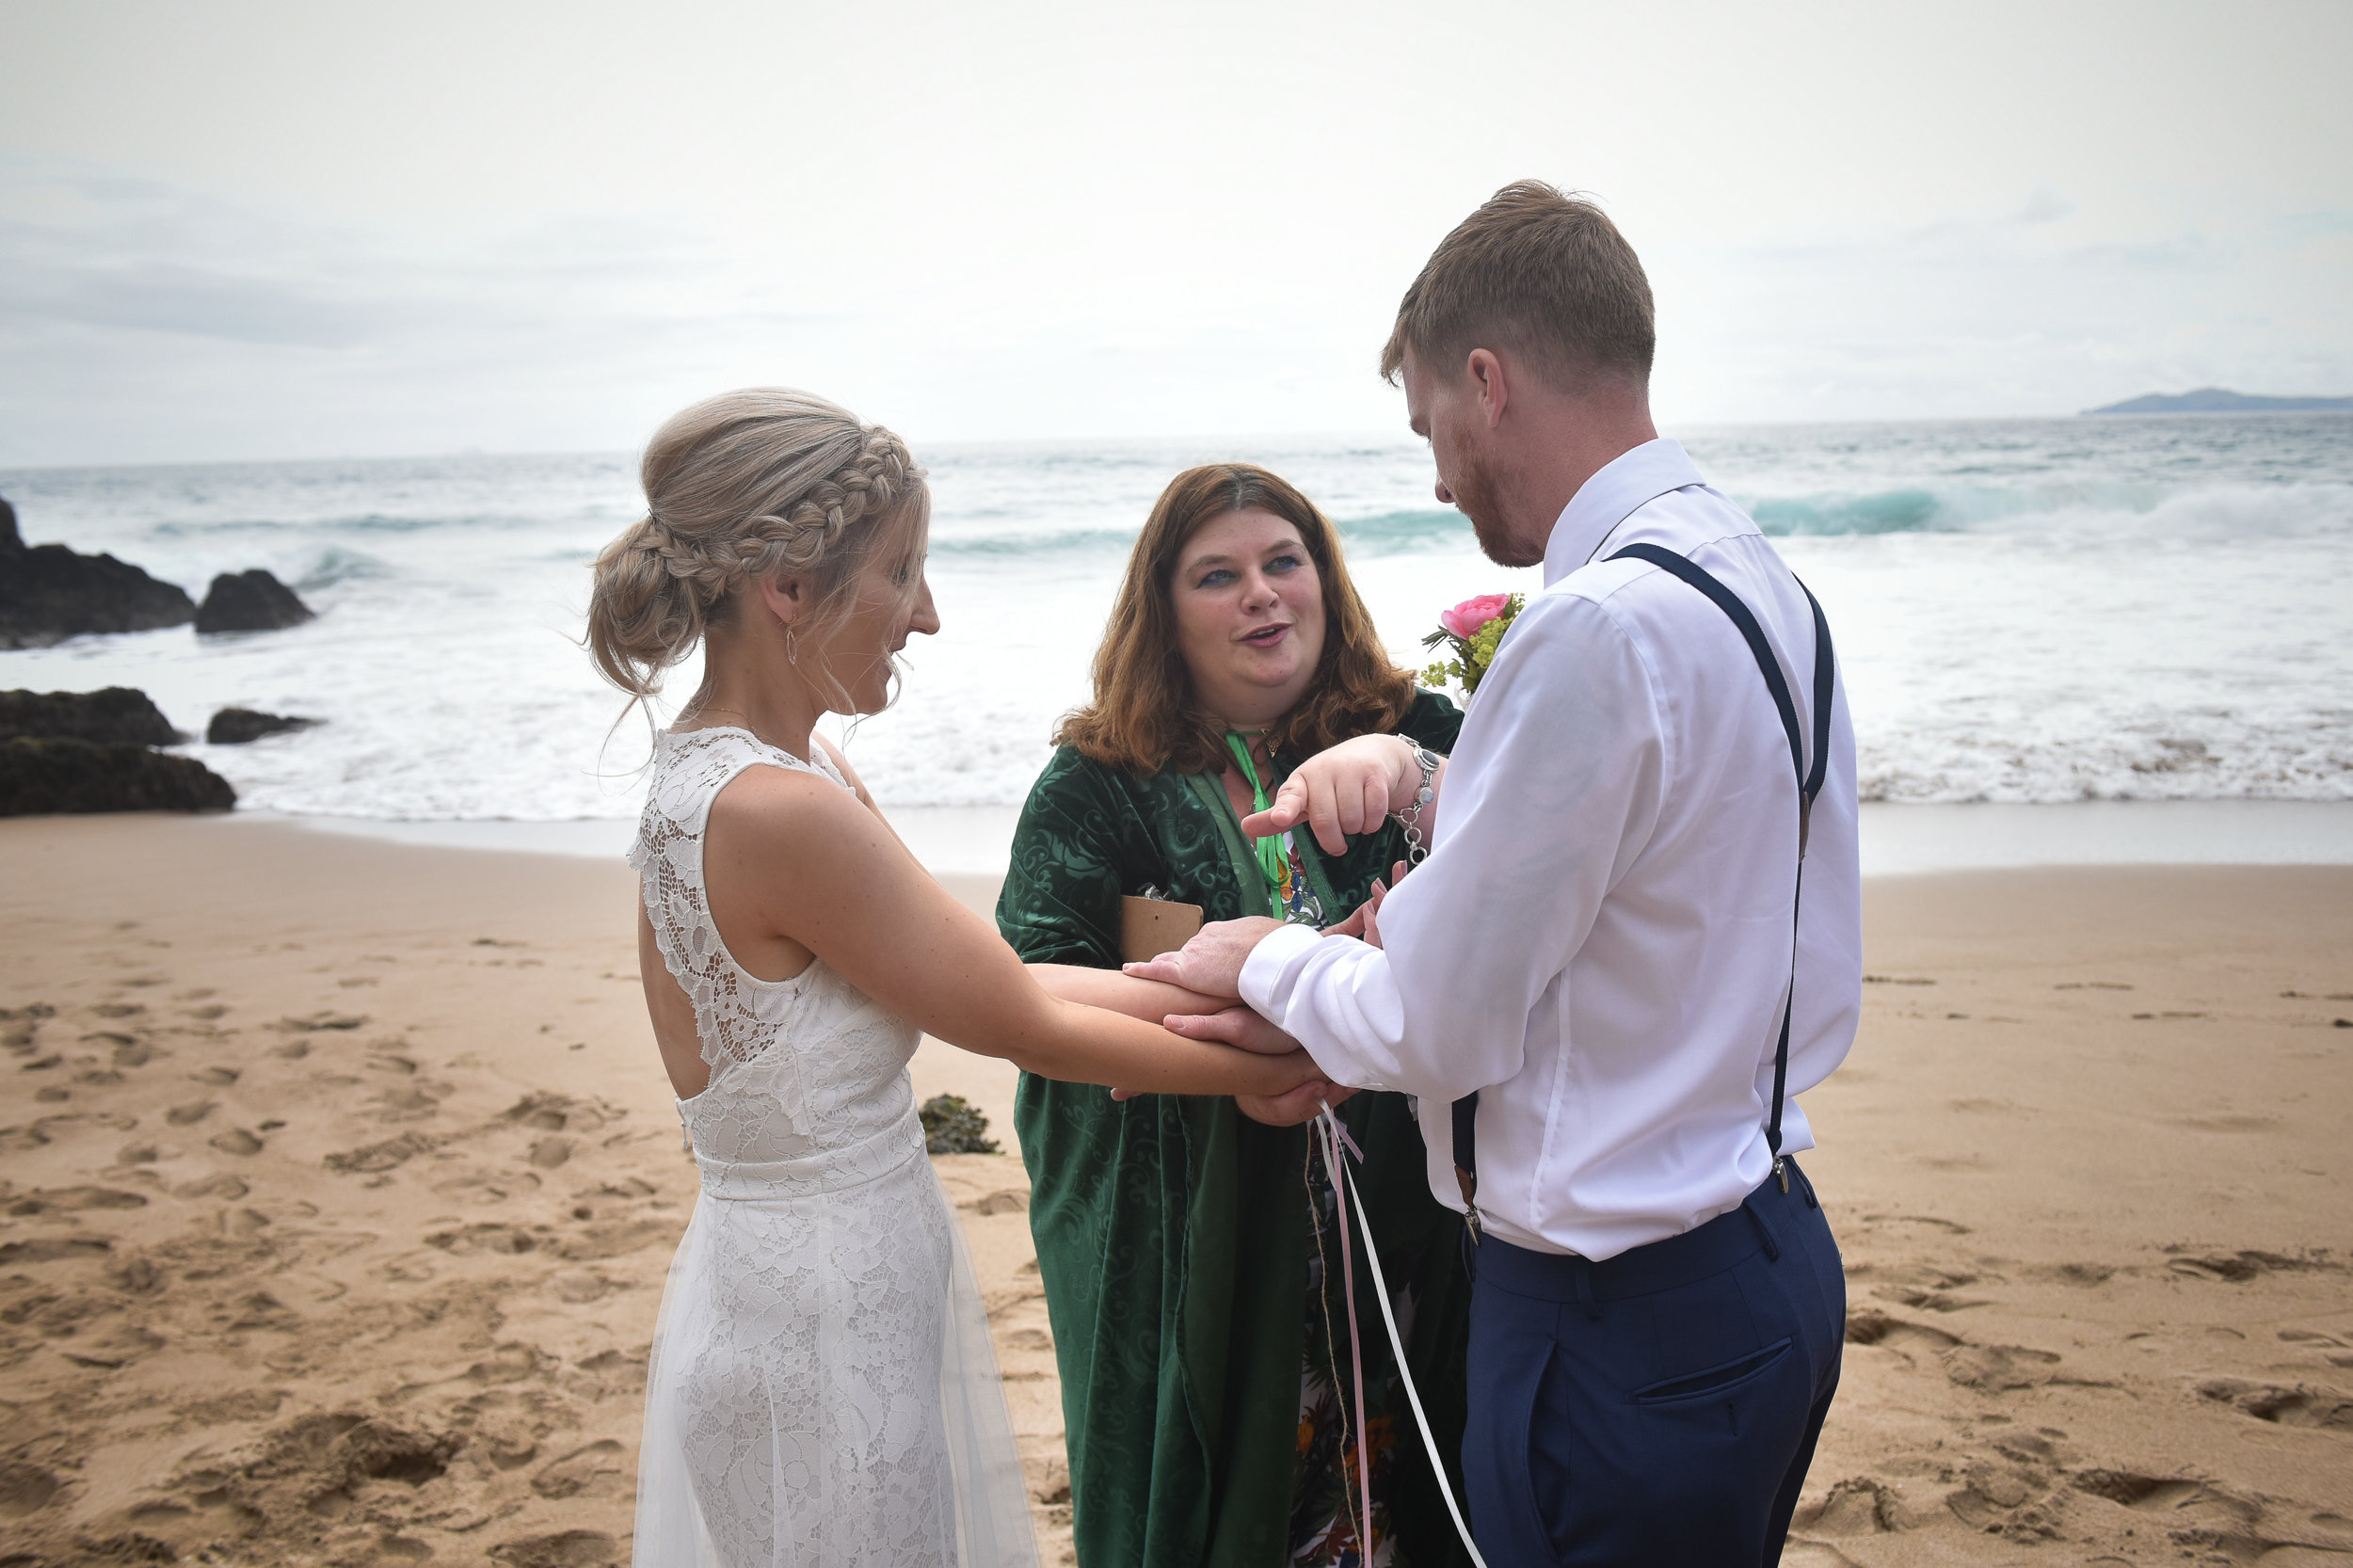 fasting hands wedding ceremony on beach ireland.jpg